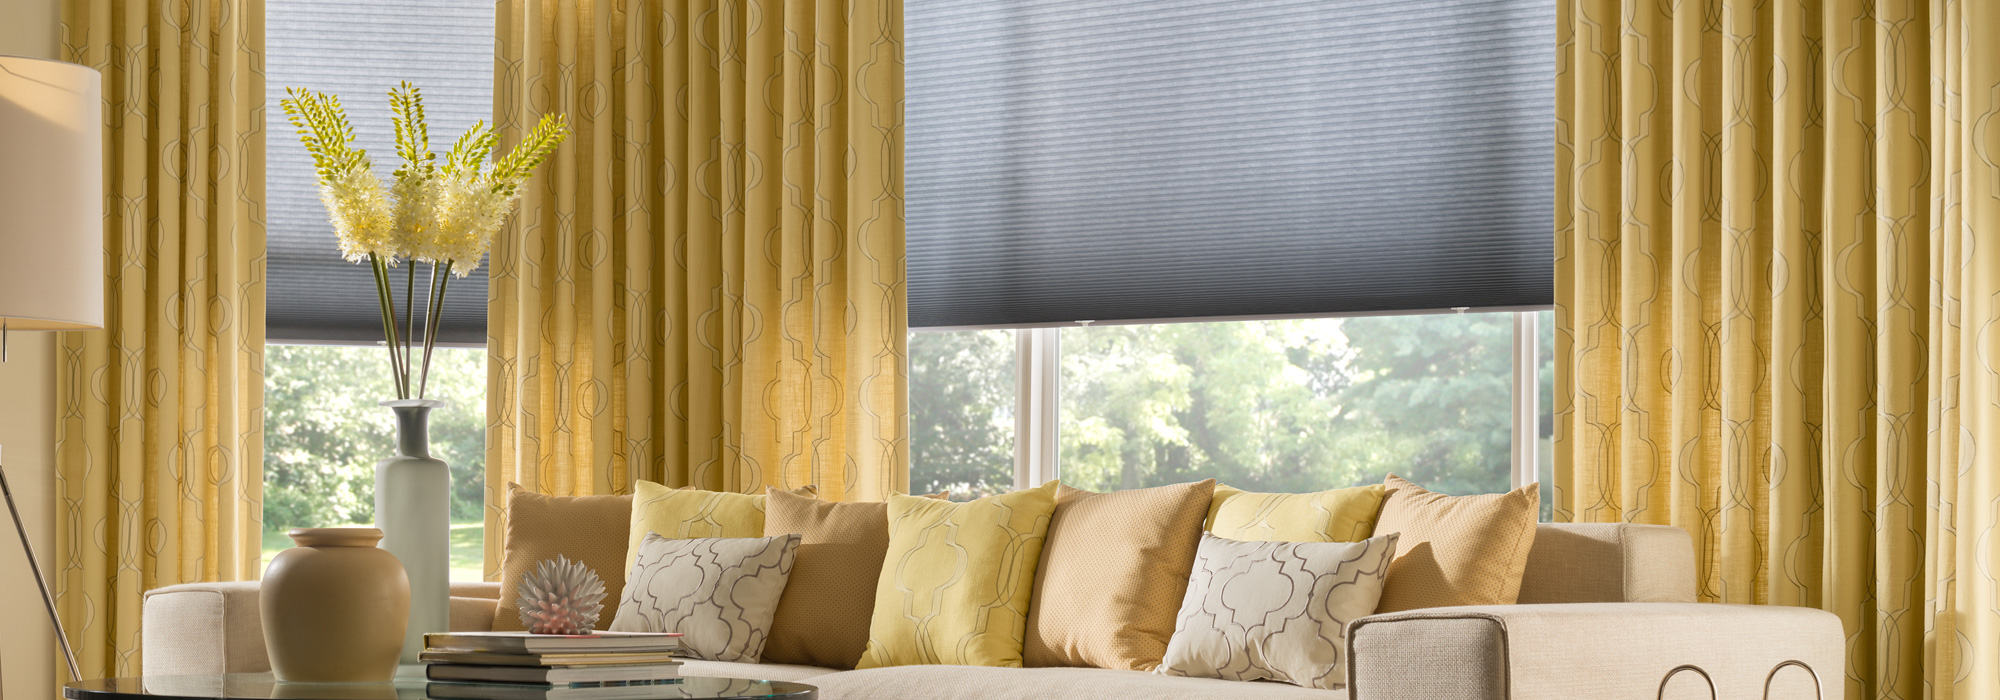 Designer Curtains For Living Room In South Africa Living